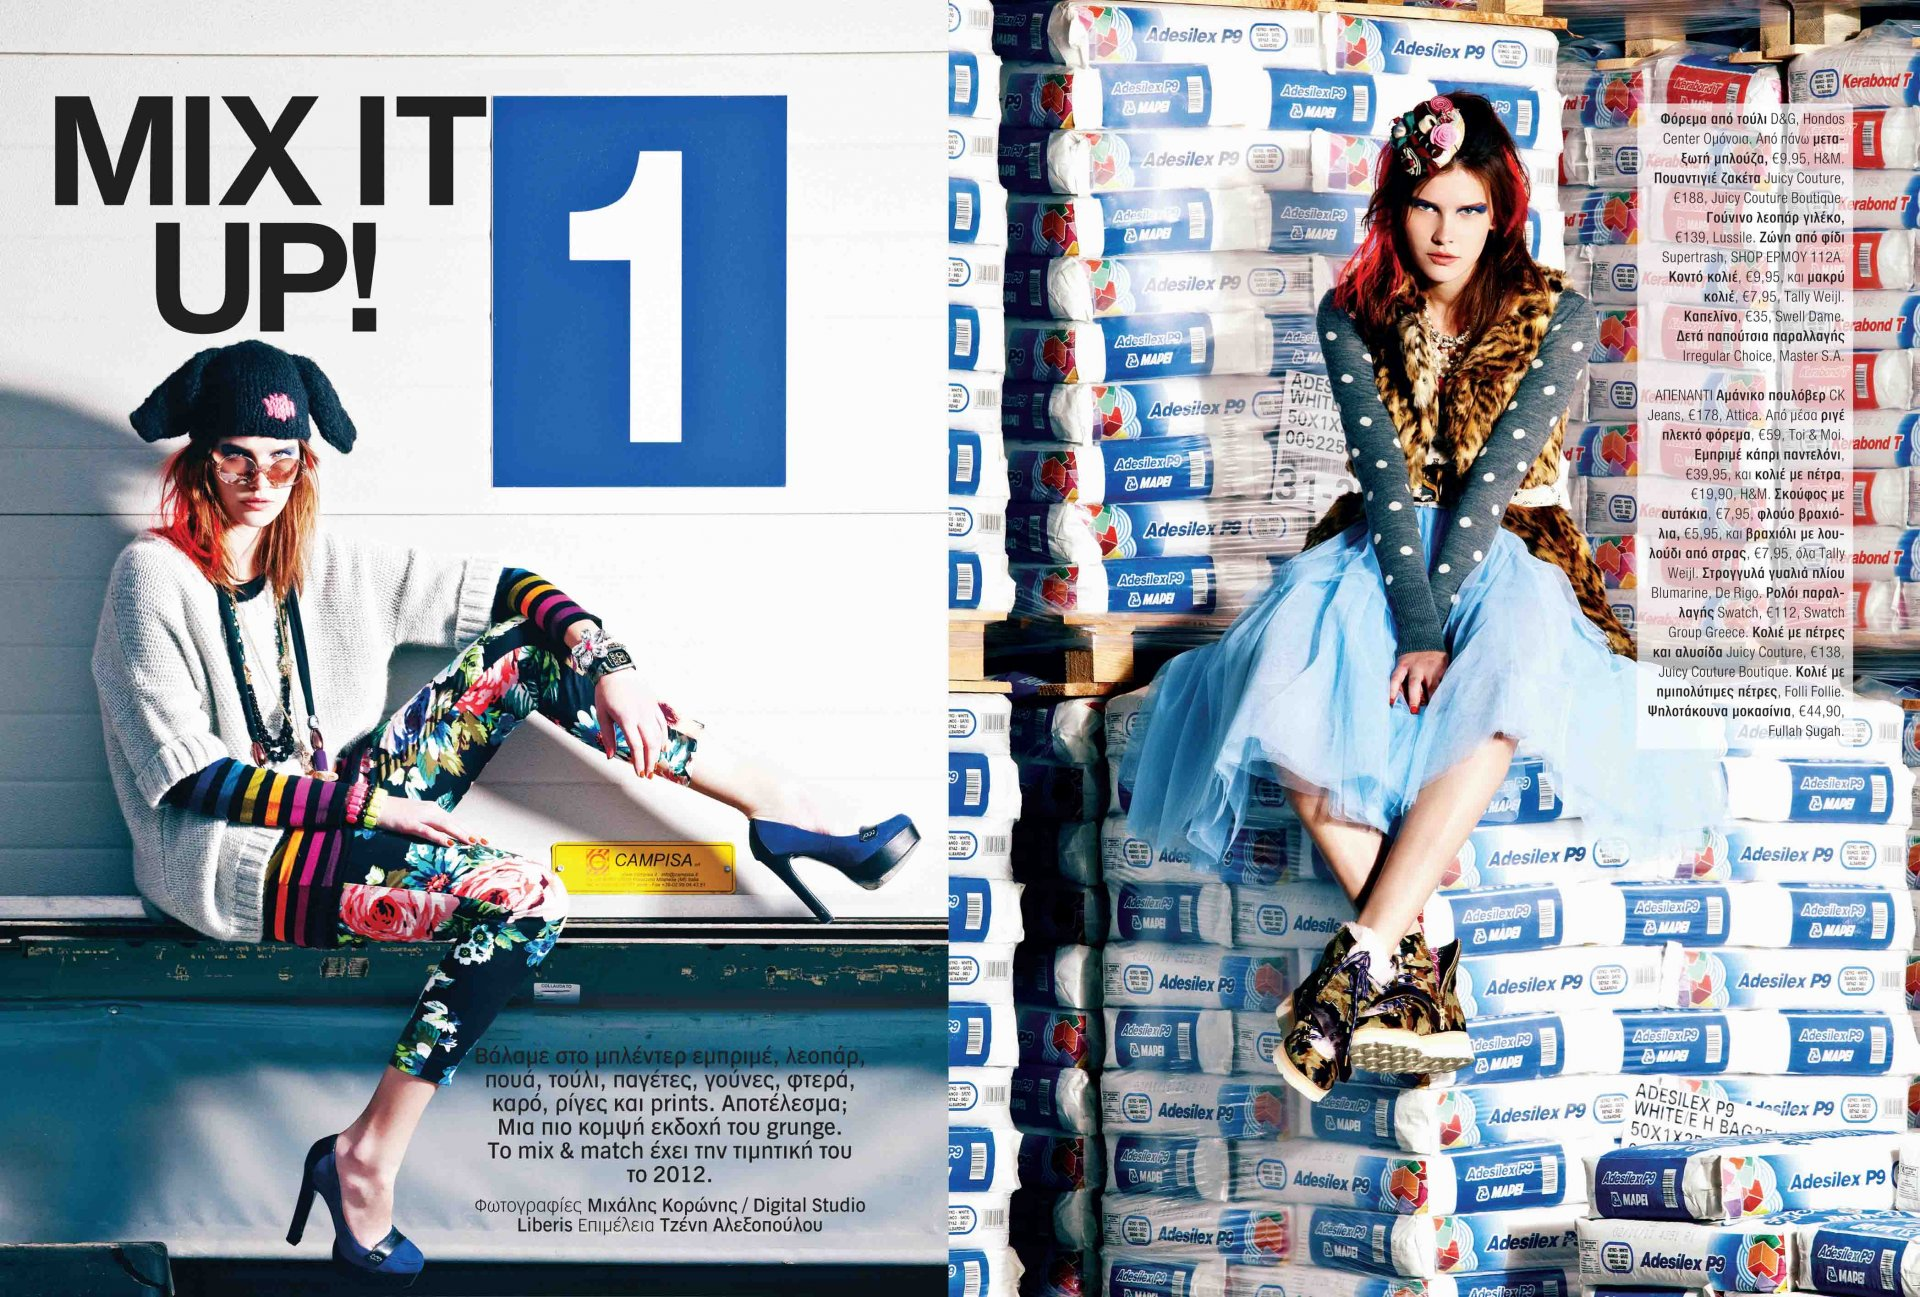 BY MICHAEL KORONIS FOR Glamour Magazine Greece - MIX IT UP!